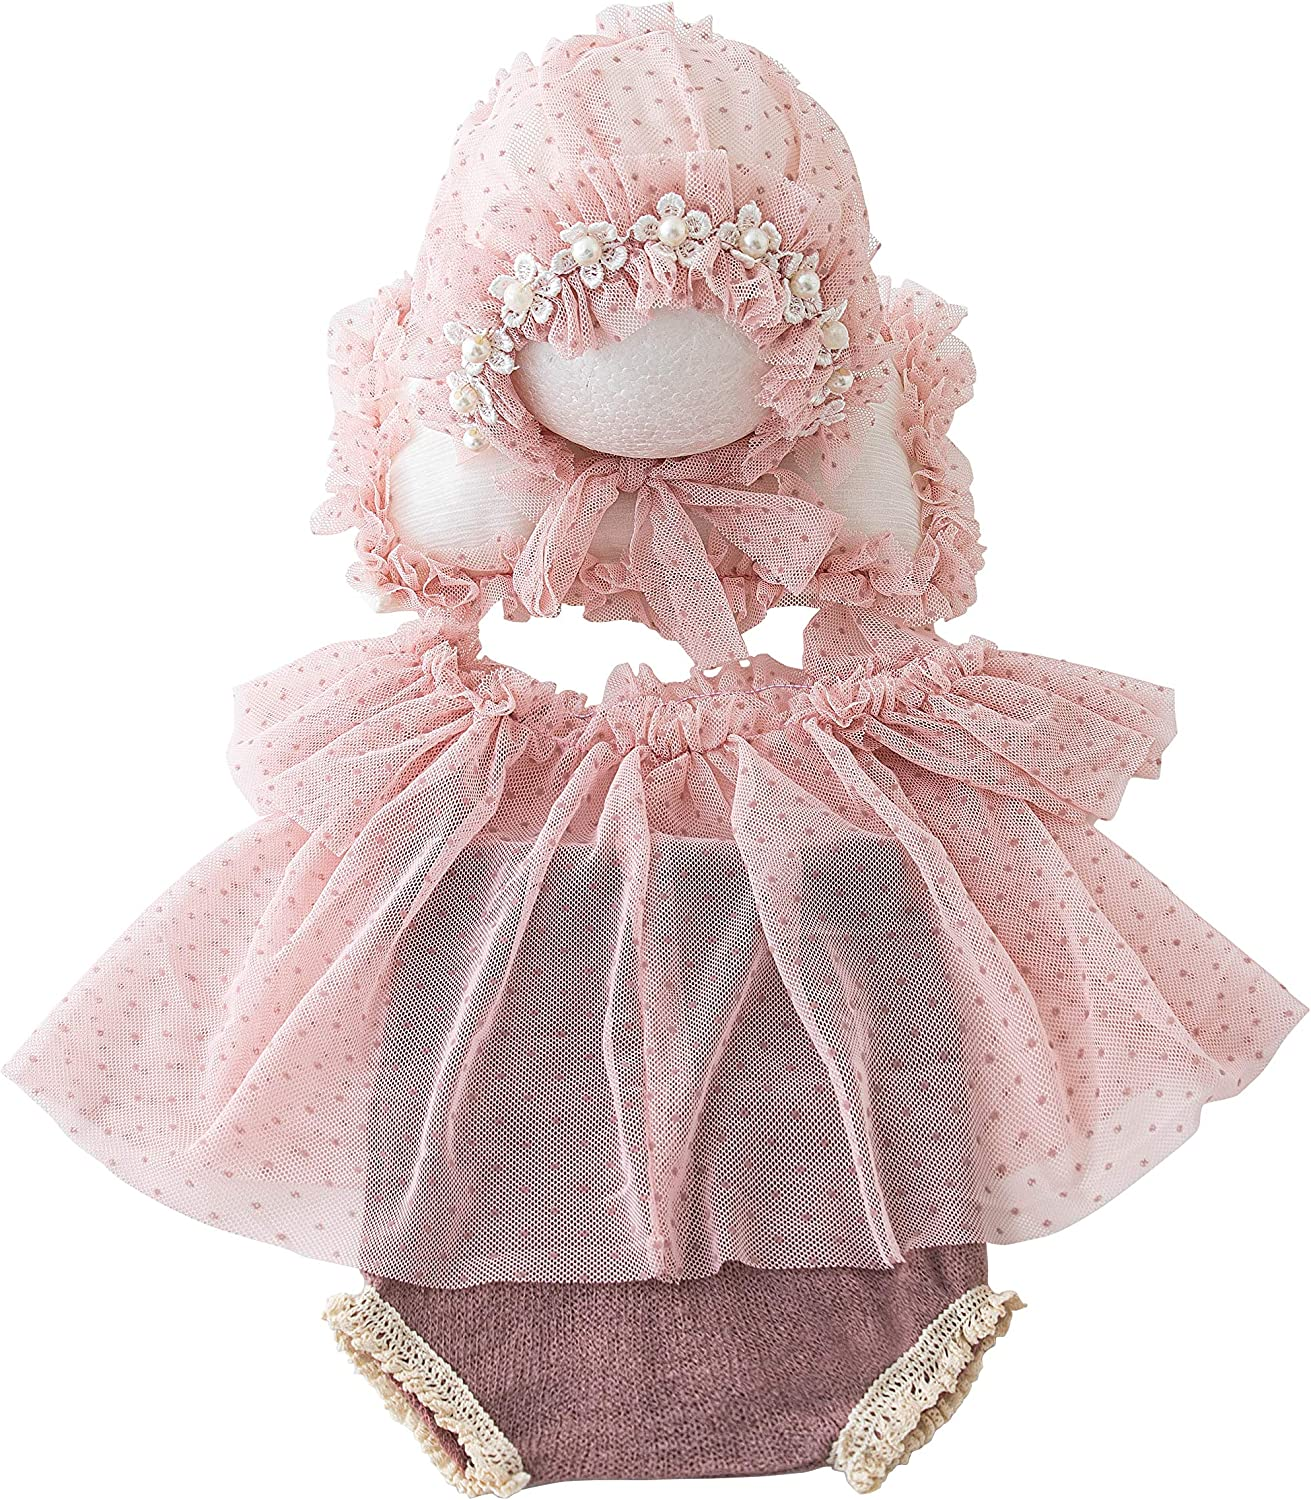 Newborn Photography Props Baby Girls Outfits,Baby Photo Props Soft Lace Headdress Romper Bodysuits Set